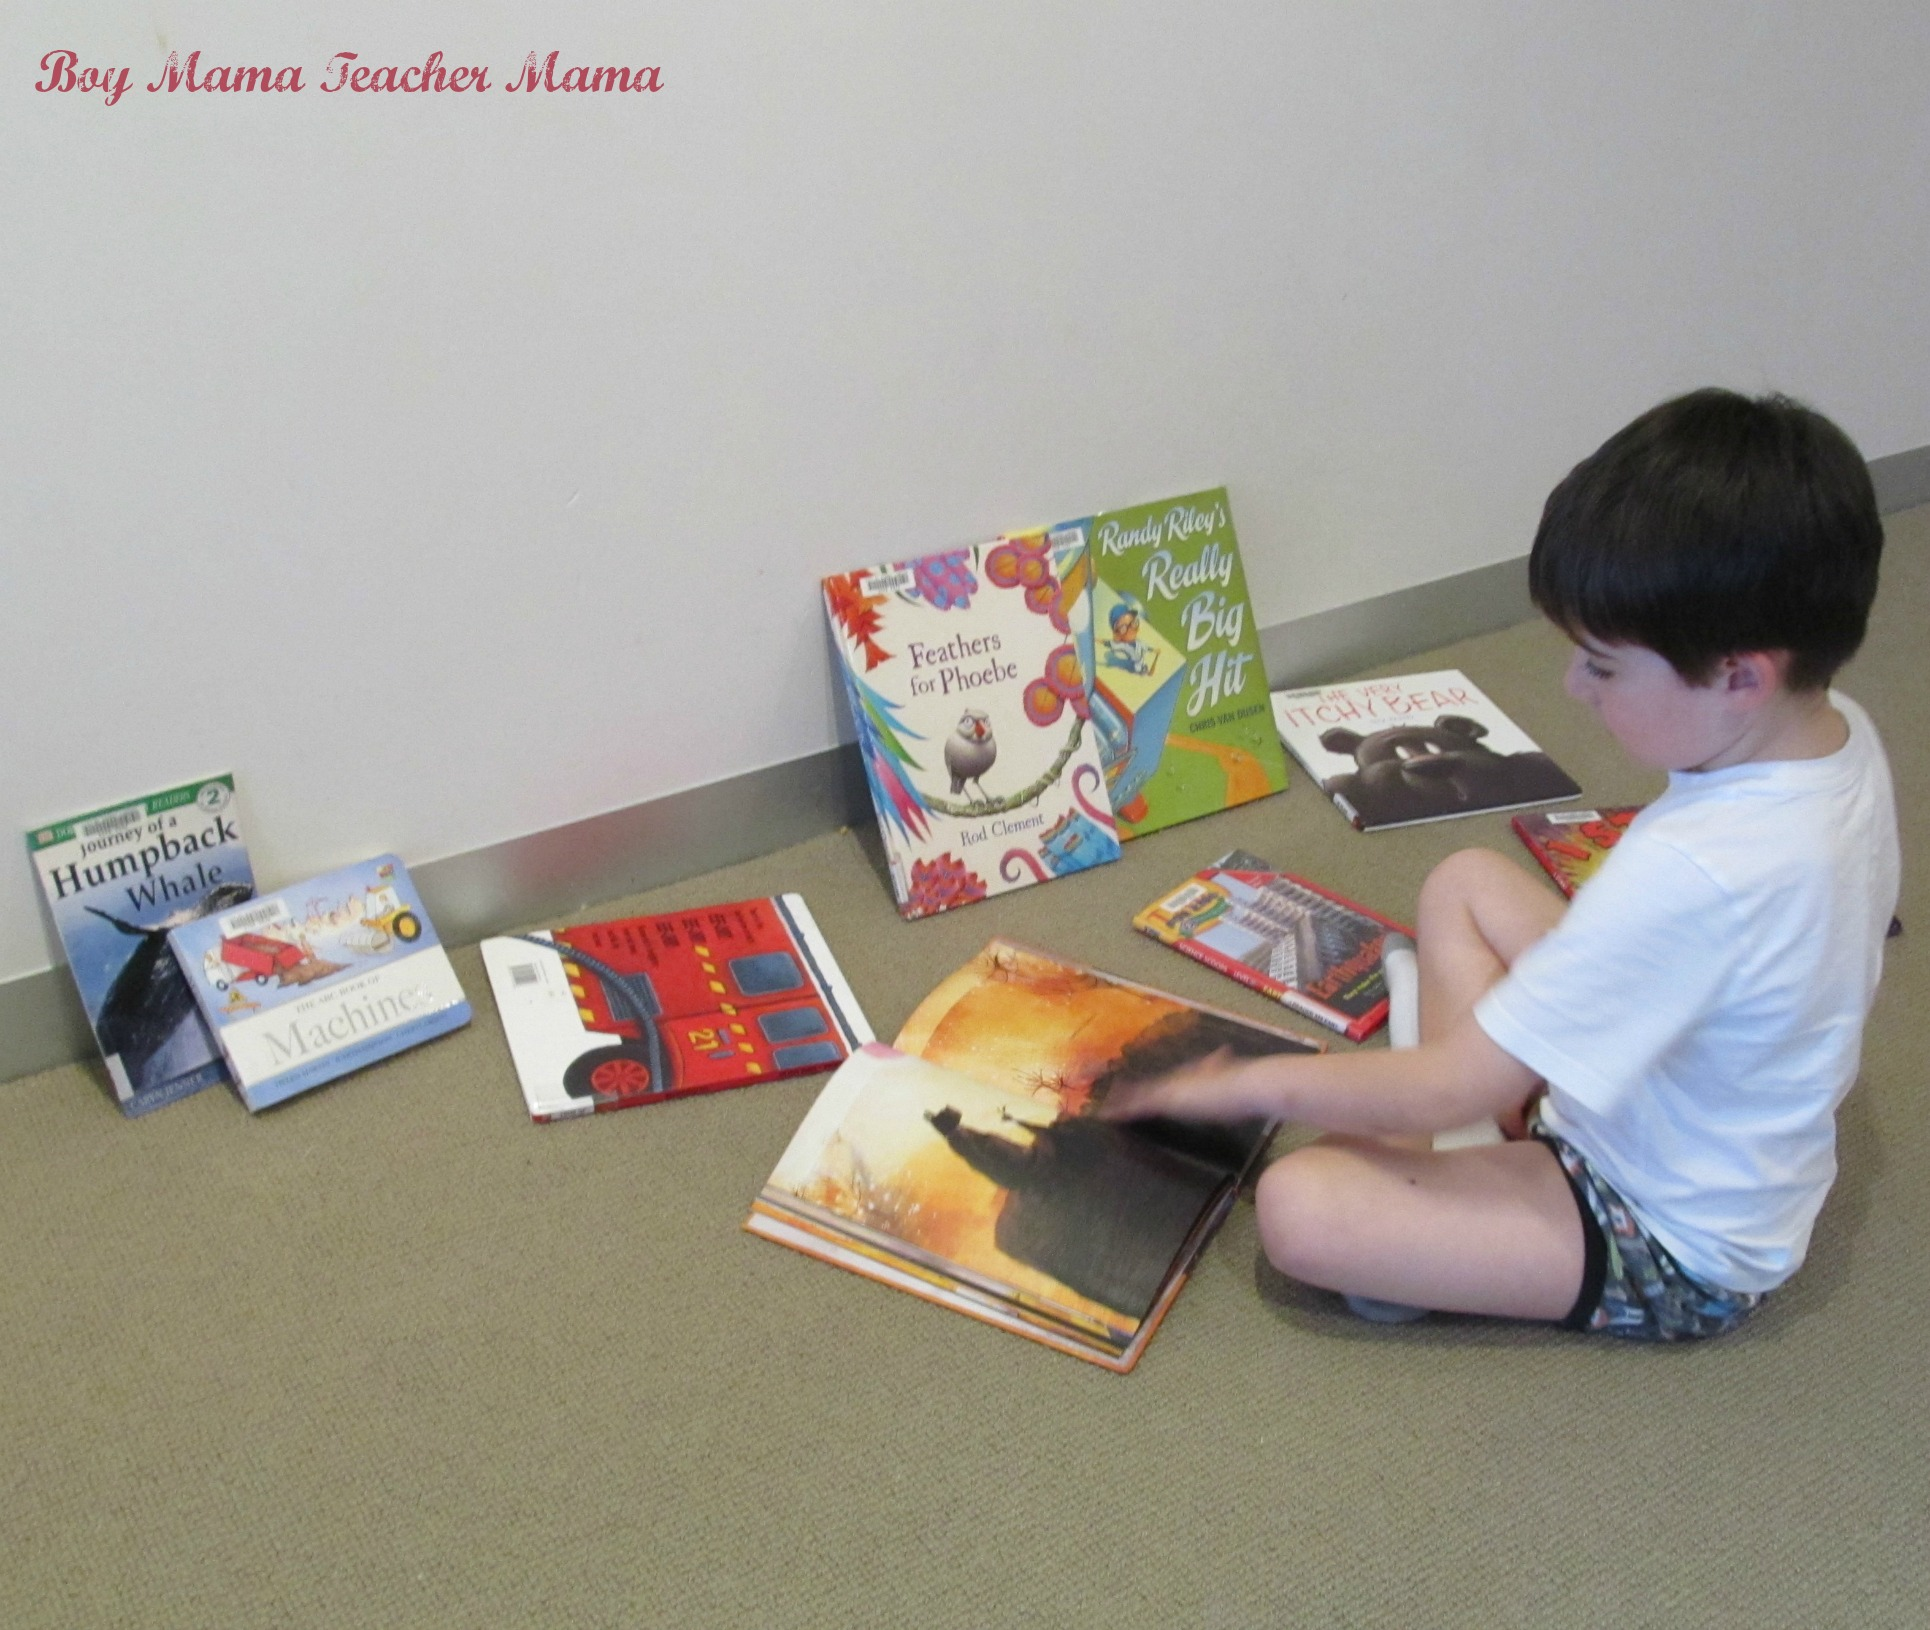 Boy Mama Teacher Mama: Library Book Love